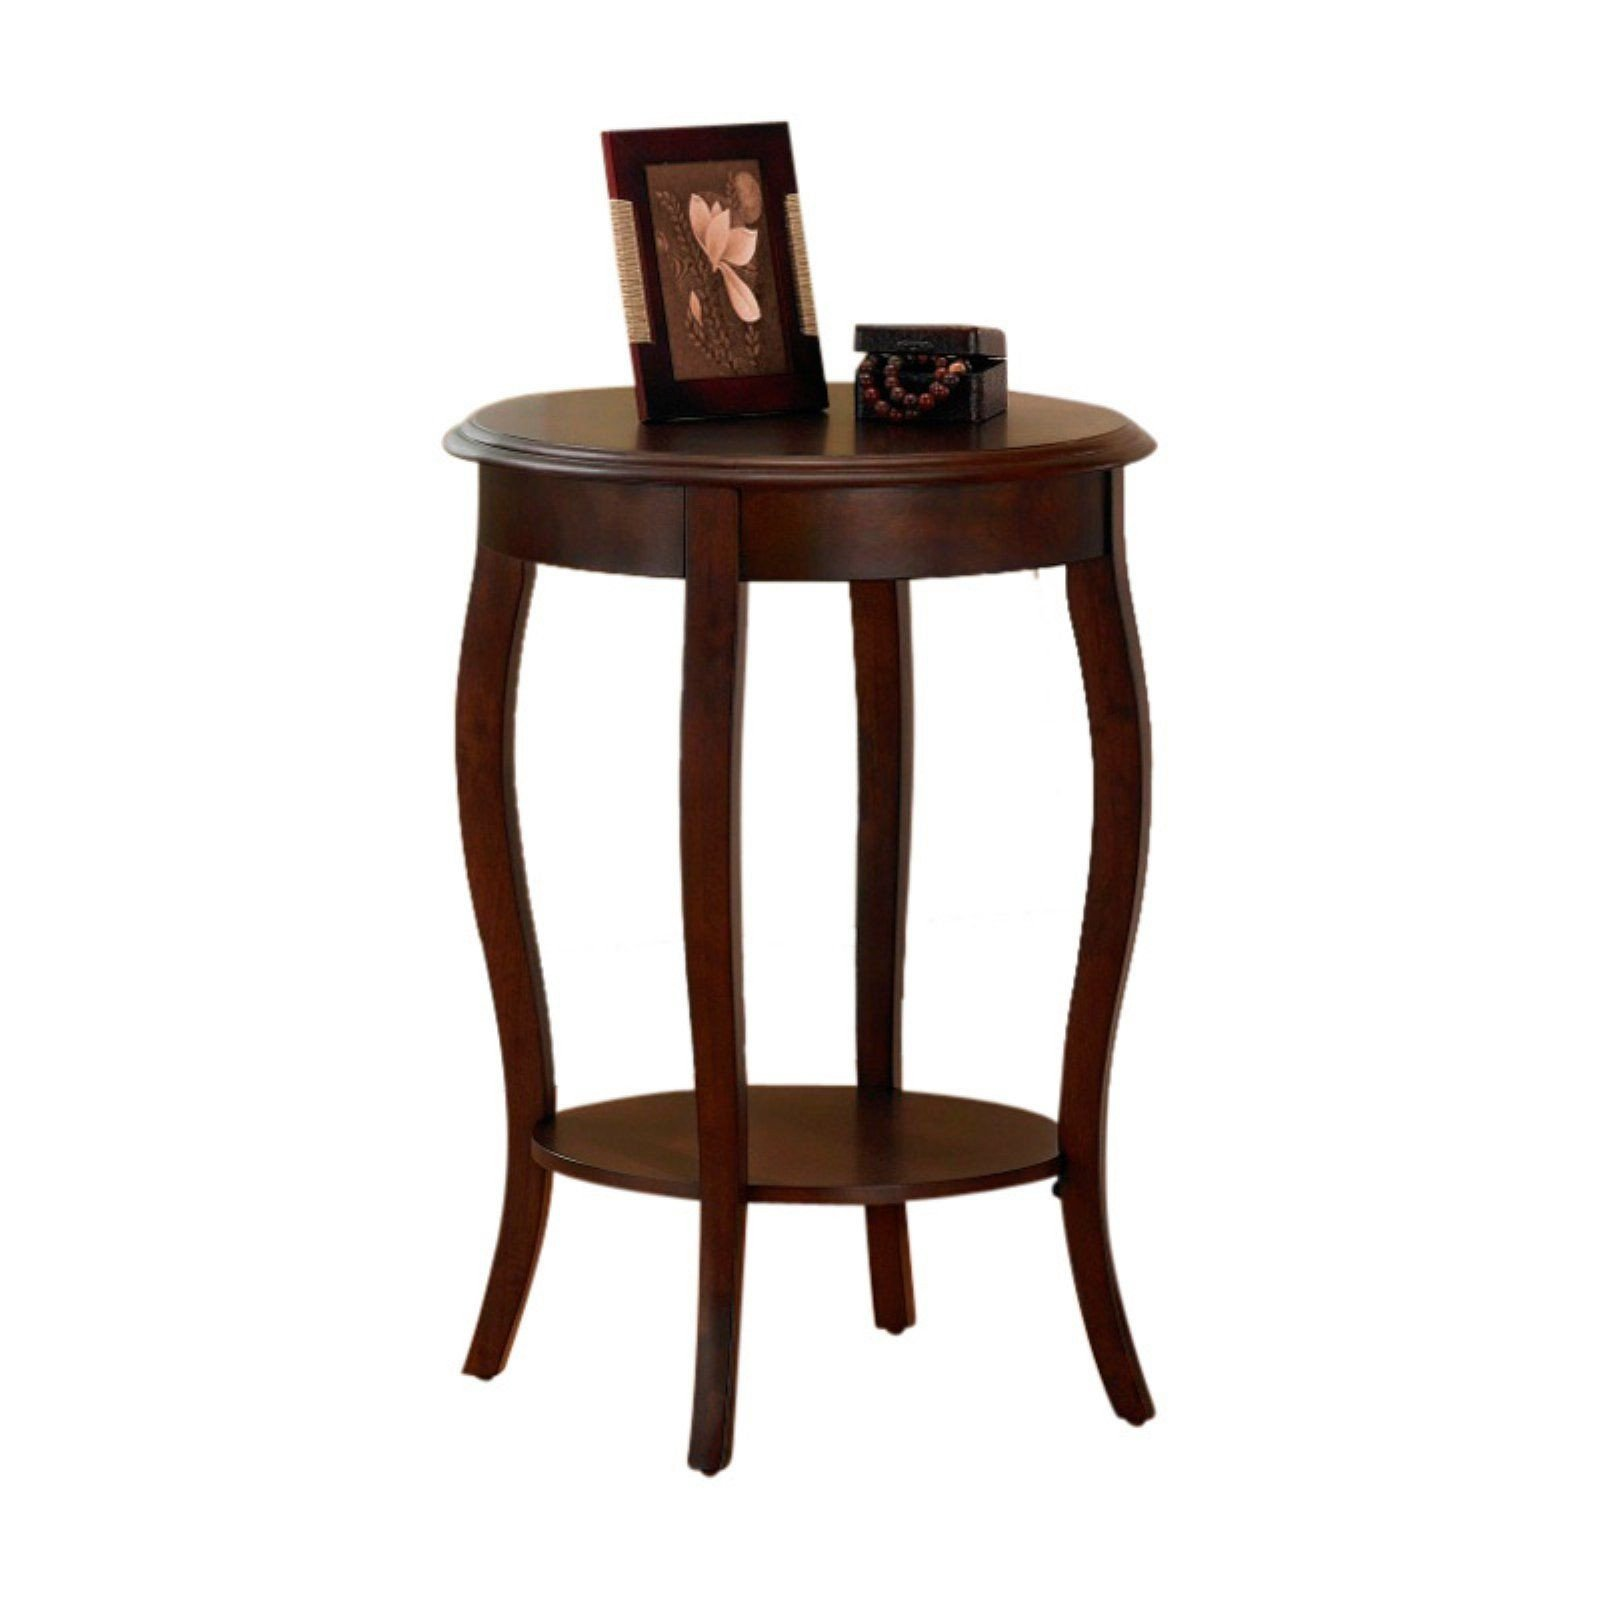 End Tables for Bedroom Elegant Pin On Products